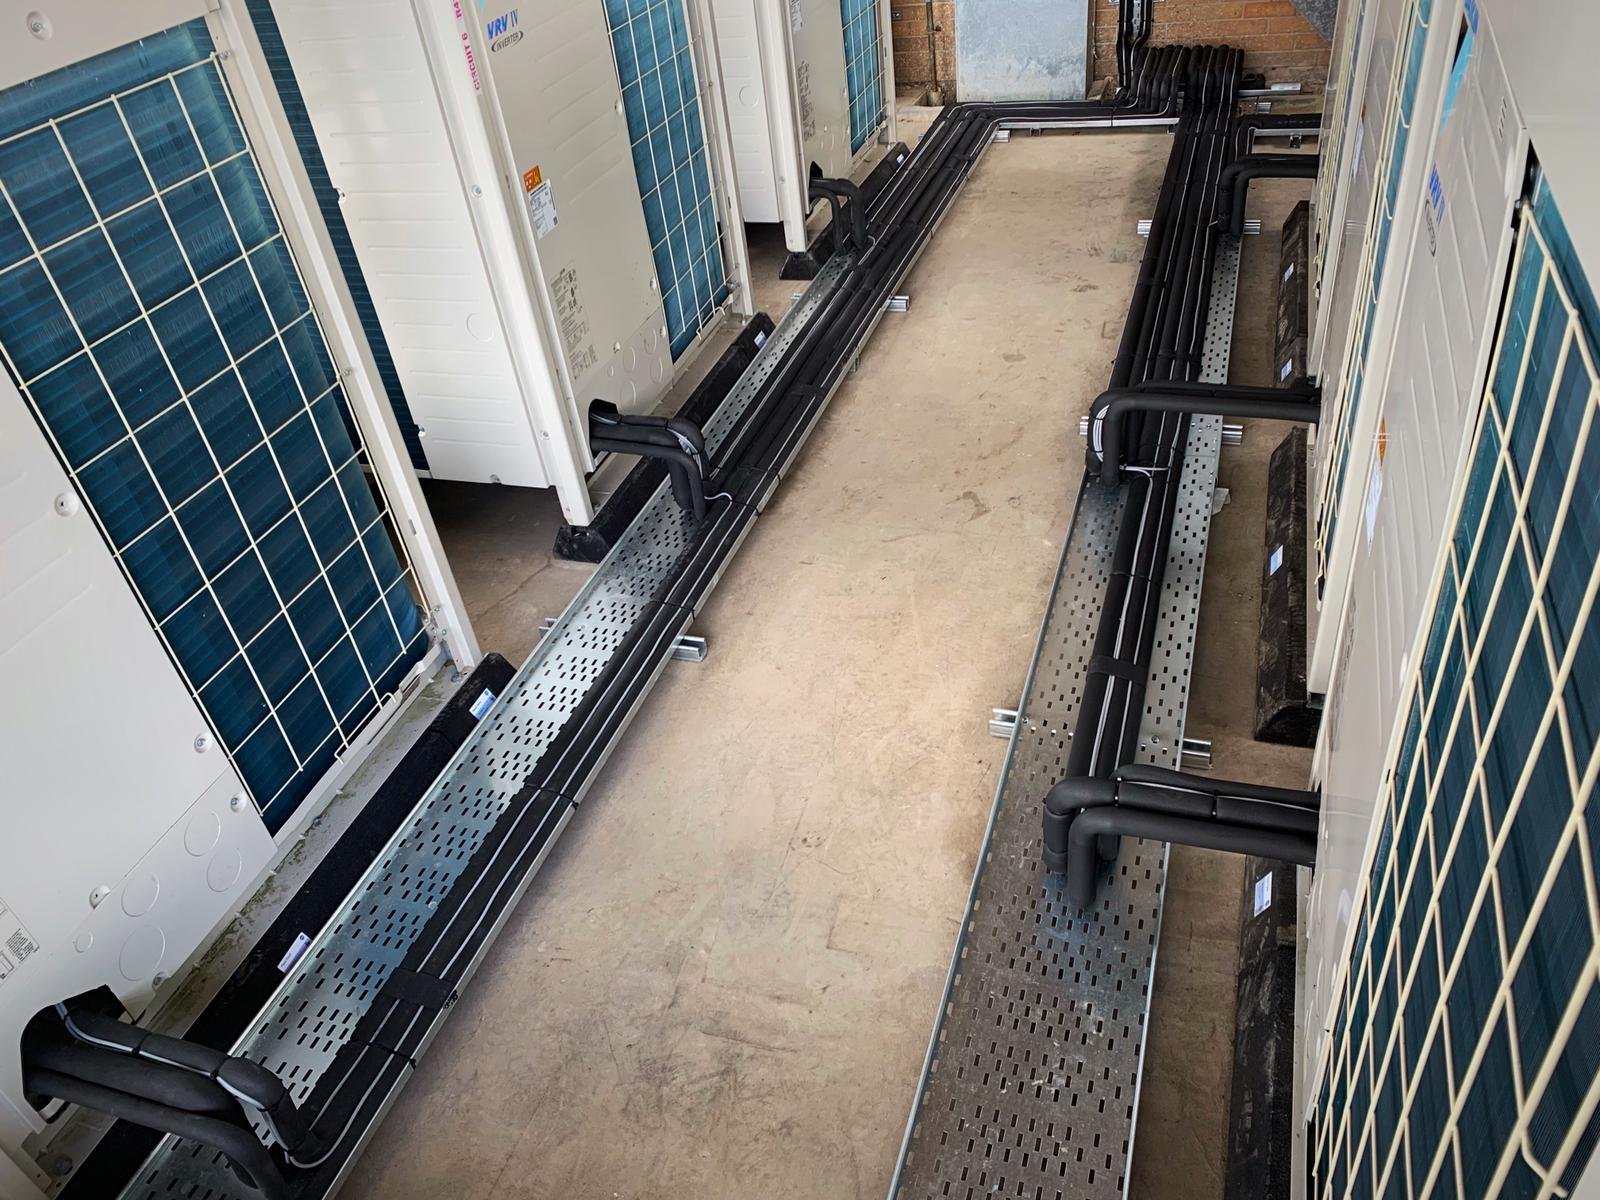 Daikin VRV Installation - Edge Hill Medical School - Aerocool Ltd - Air Conditioning - Refrigeration - HVAC